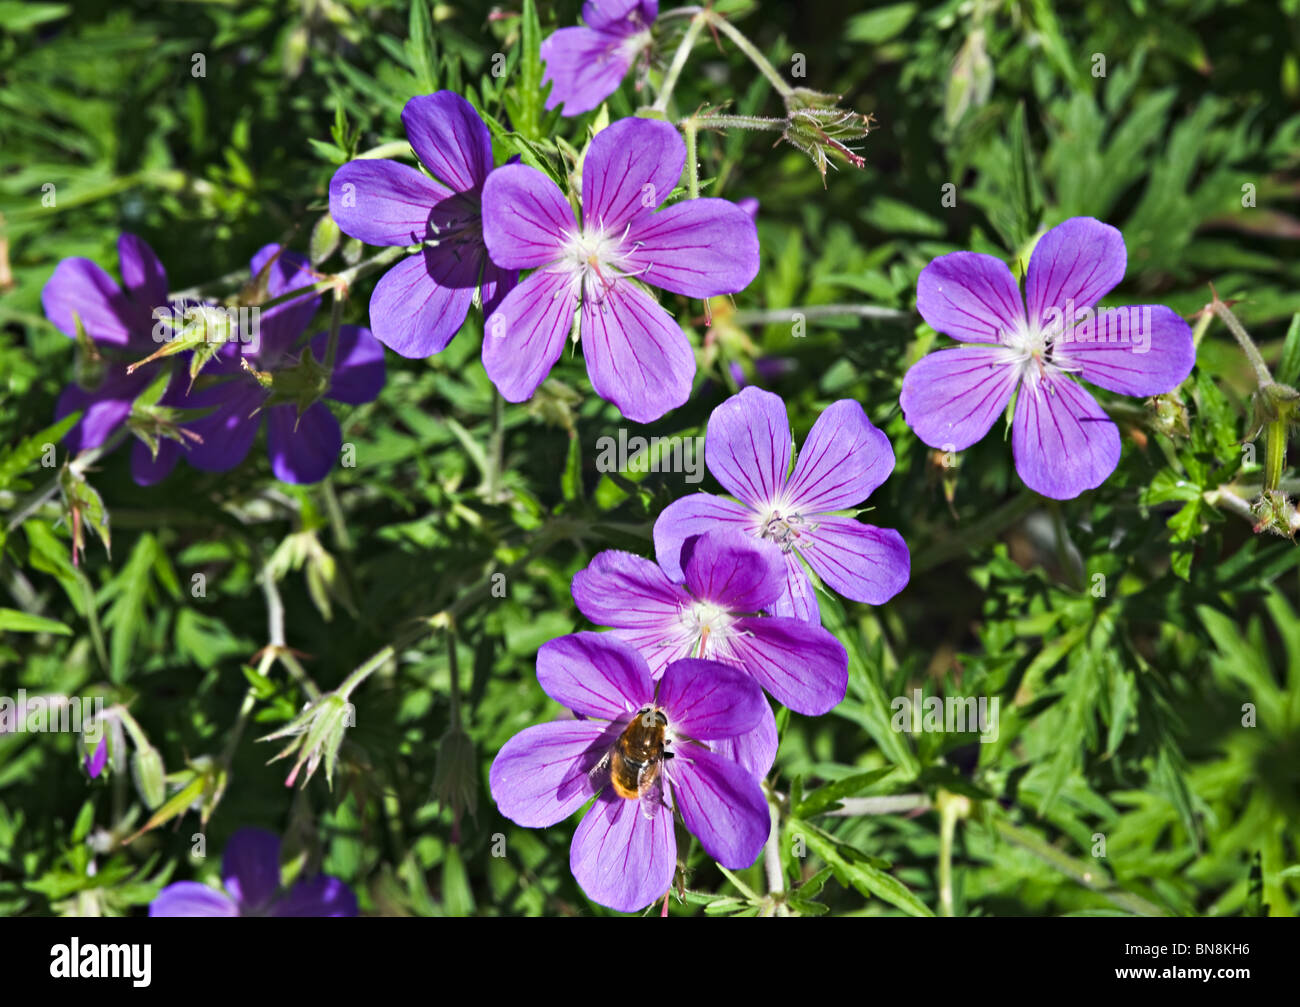 Purple Geranium Flowers in a West Sussex Garden England United Kingdom - Stock Image